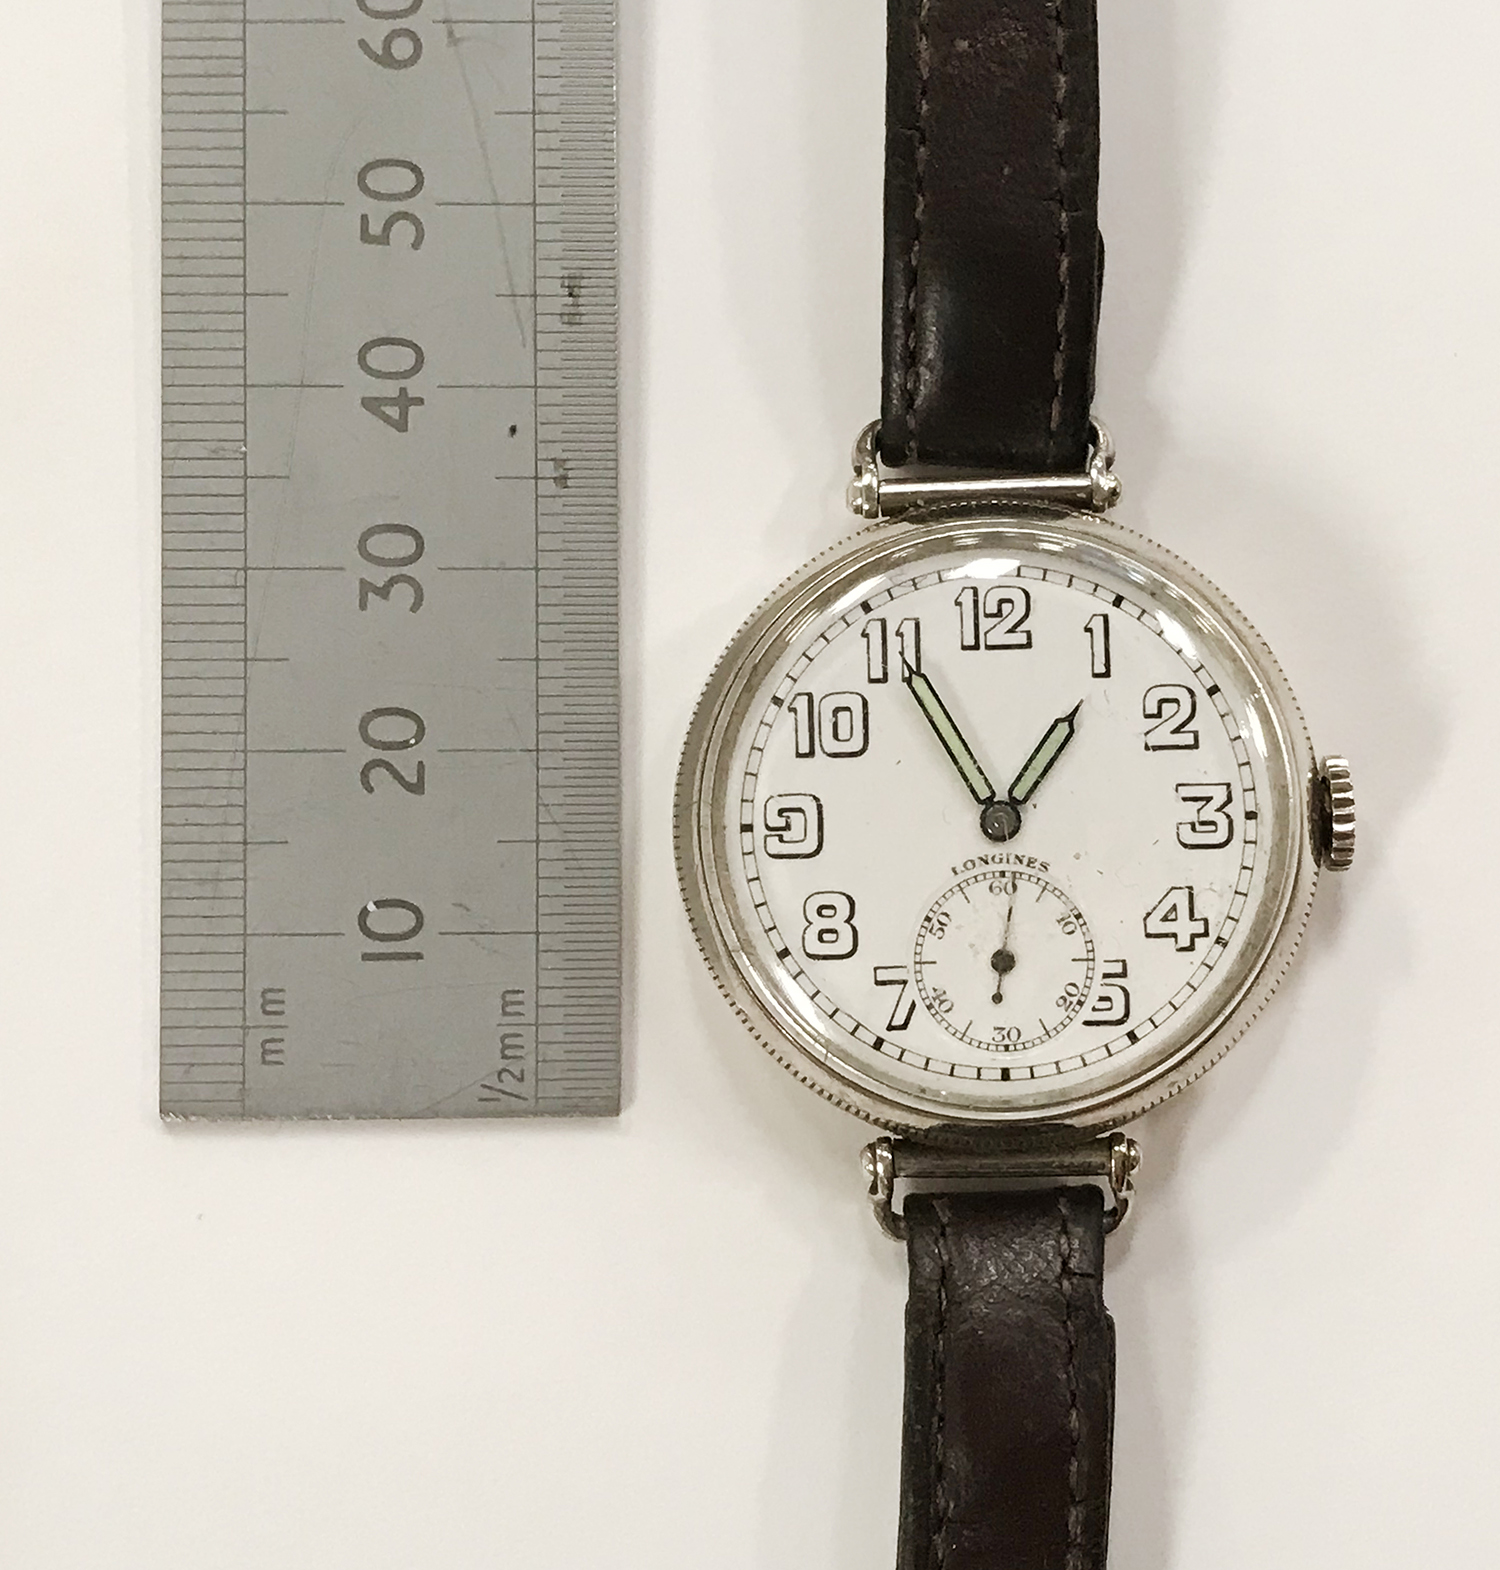 LONGINES WRISTWATCH IN SILVER - Image 2 of 3